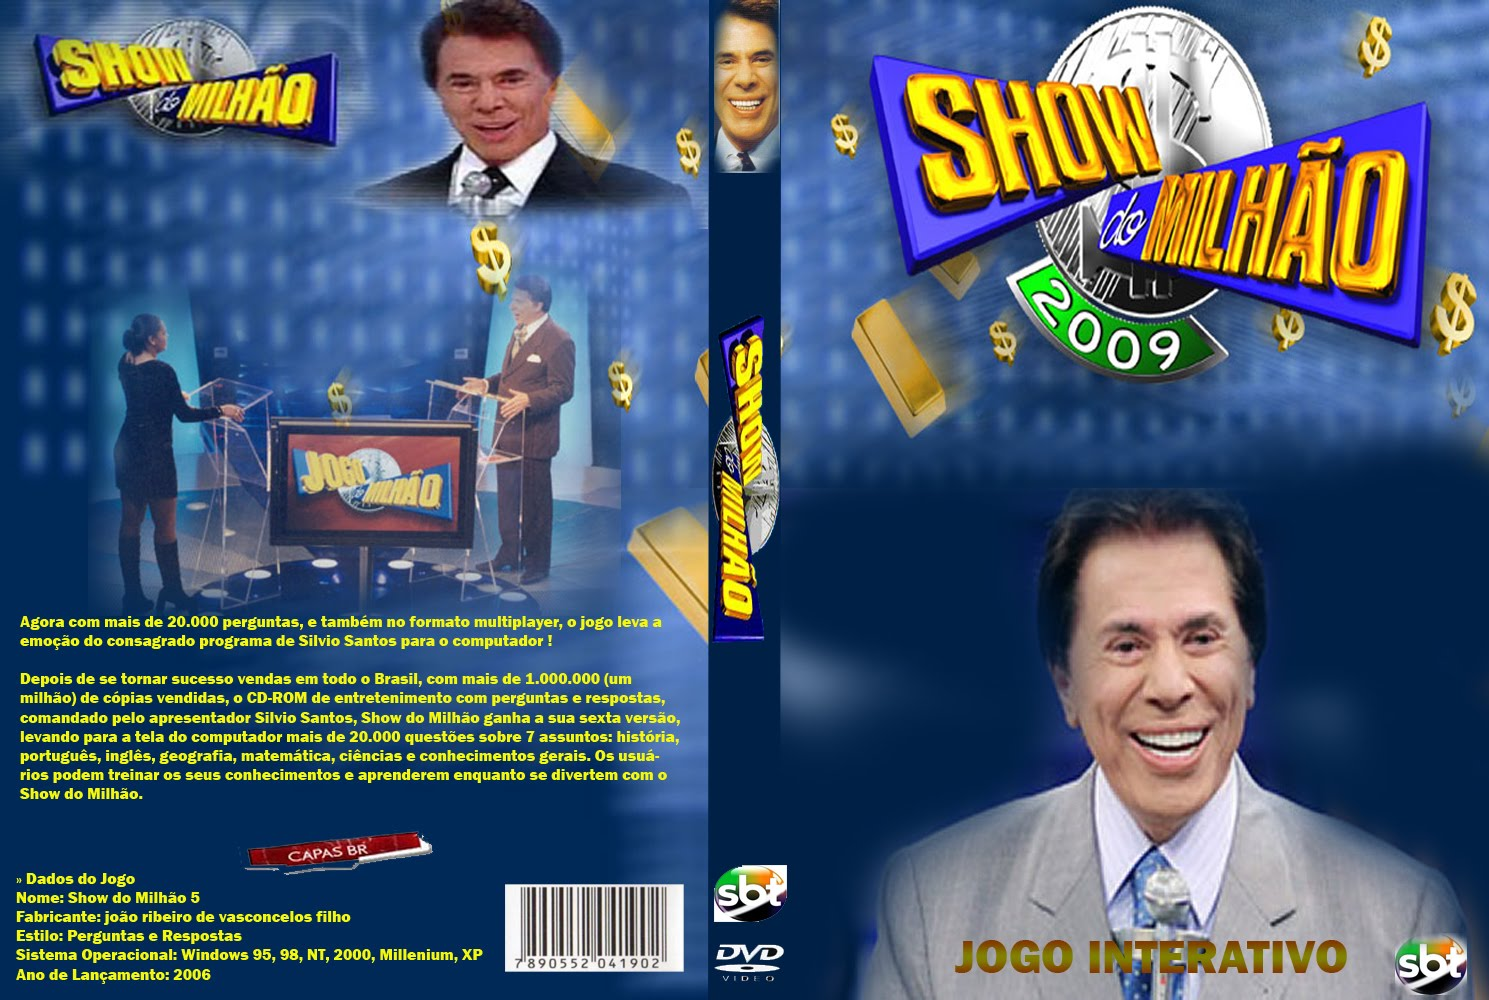 Jogo infinito show do milhão free download of android version.